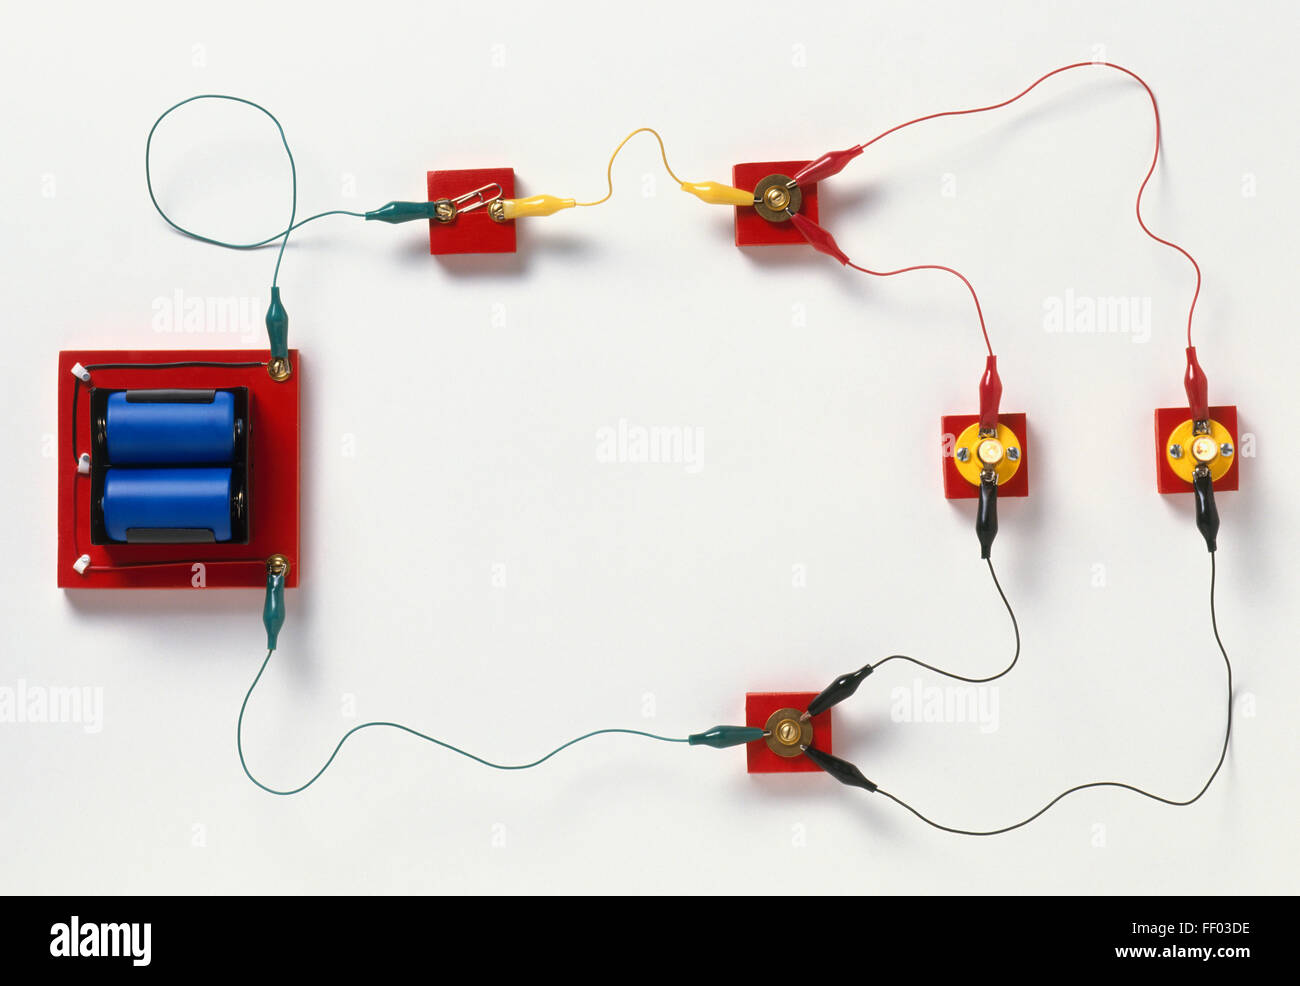 Electric Circuit Parallel